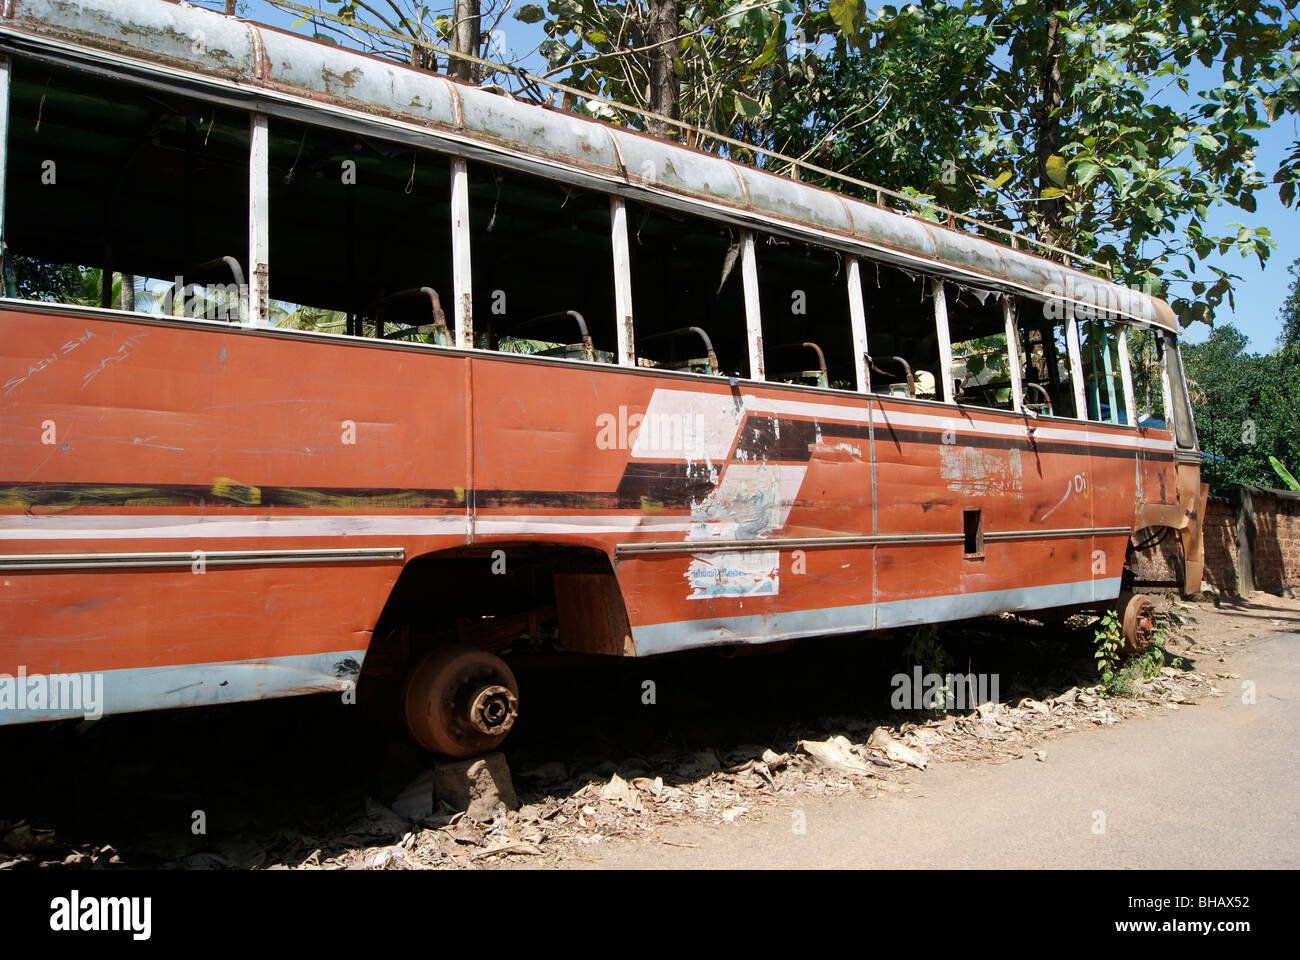 A poor wrecked old Bus parked nearby road side - Stock Image